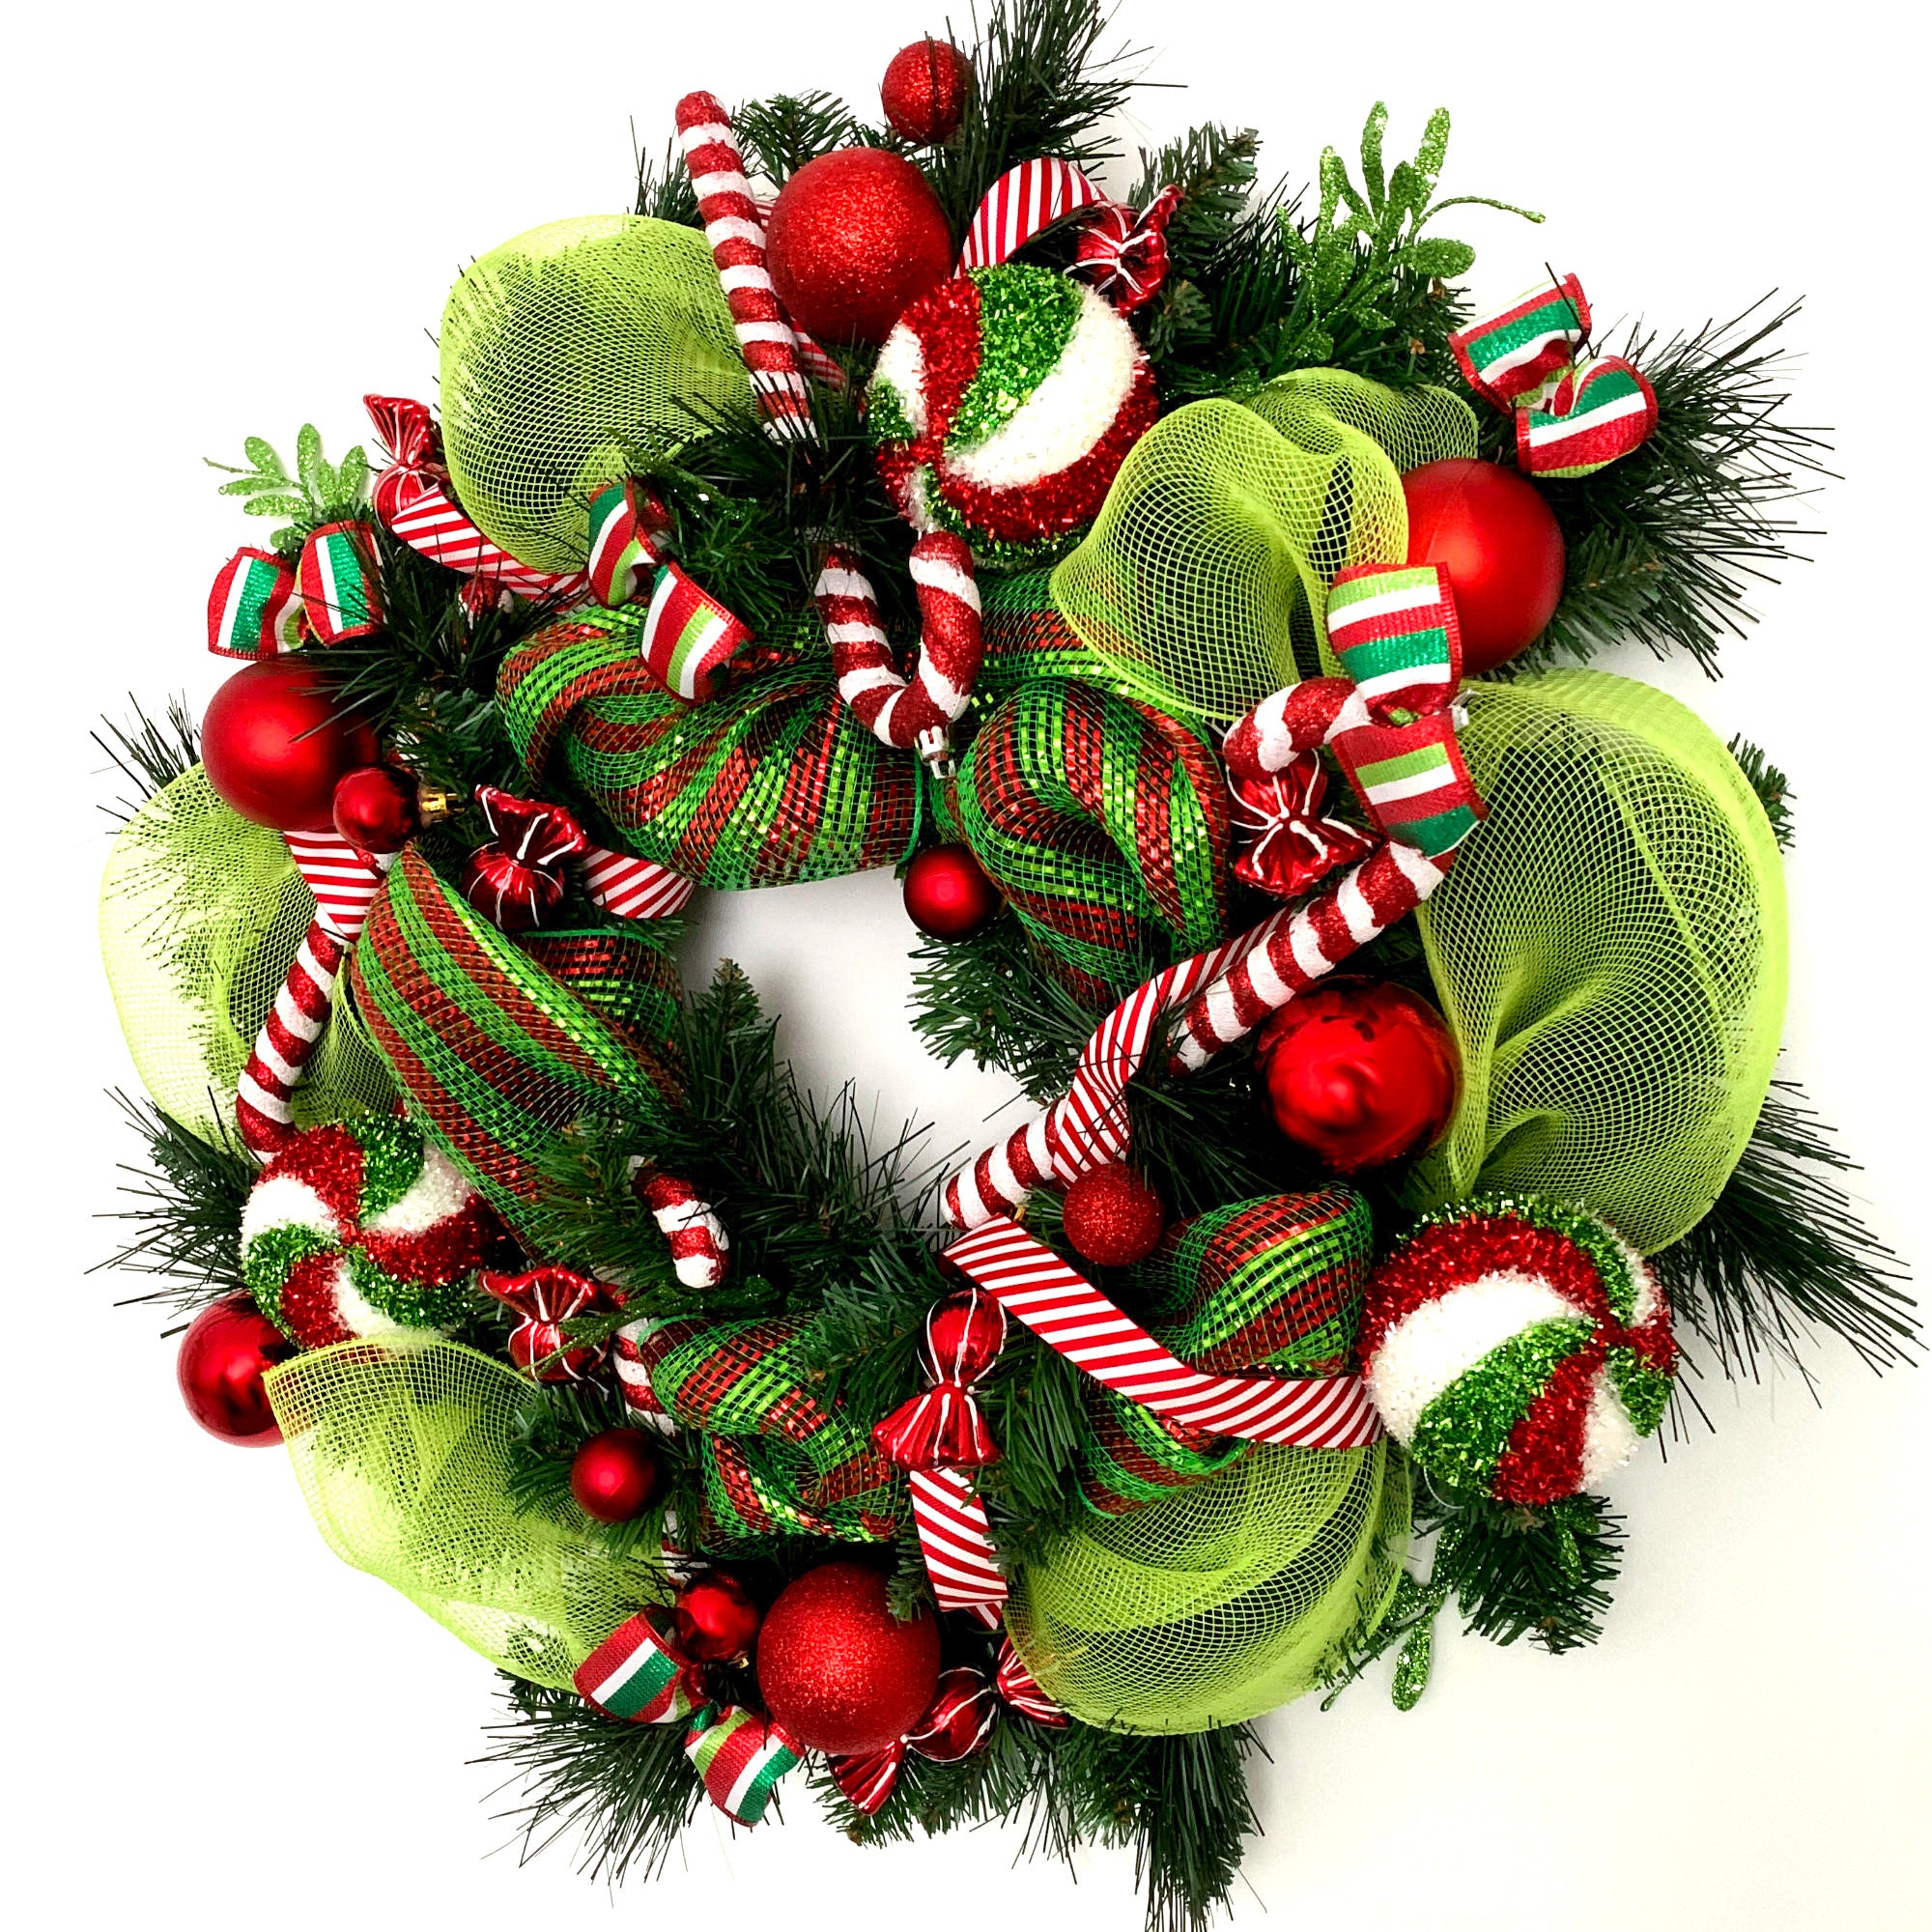 Candy Cane Swirl Christmas Wreath